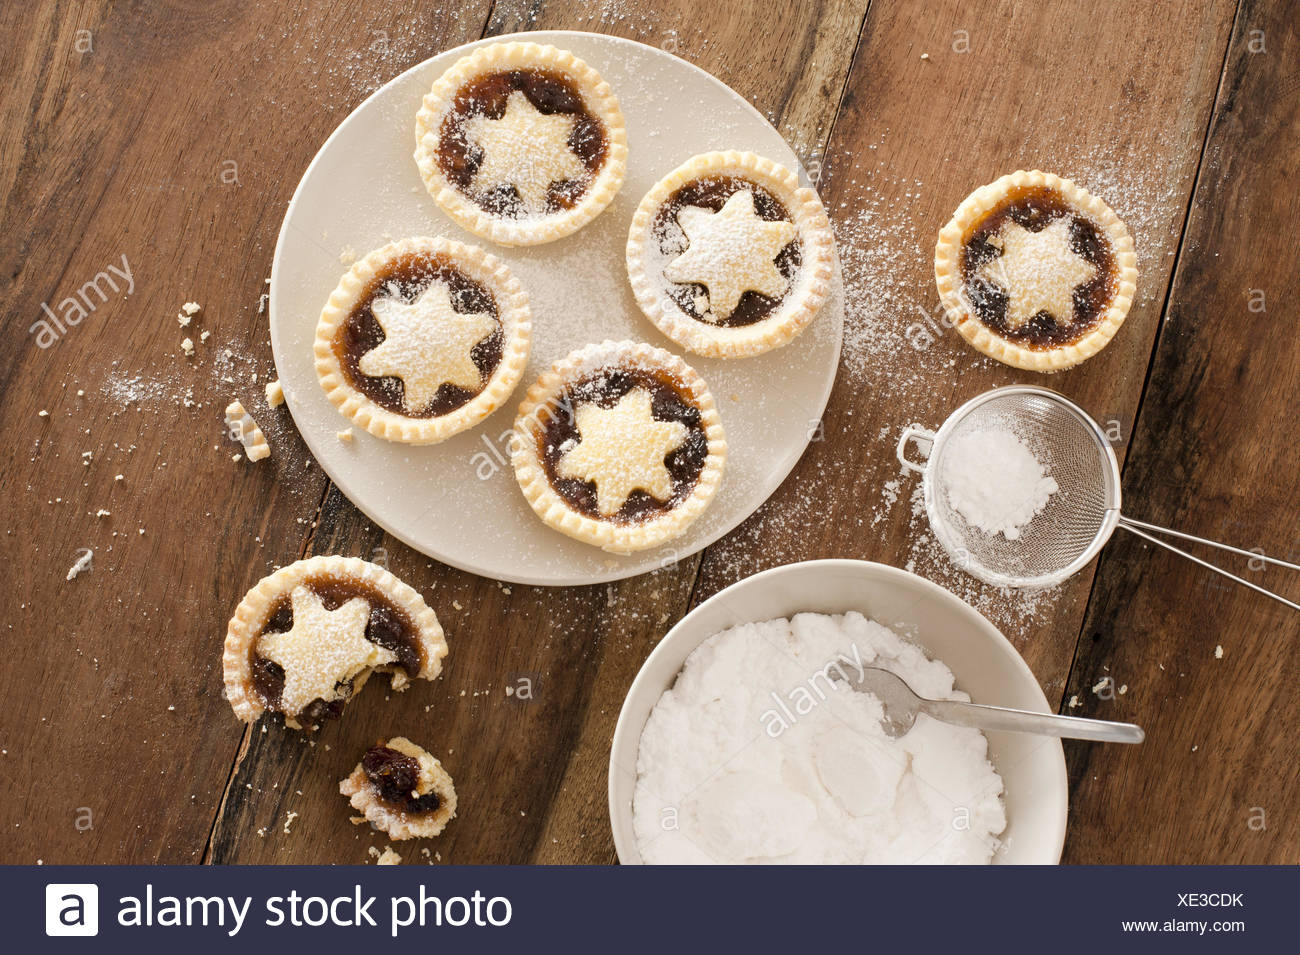 Baking Christmas mince pies - Stock Image